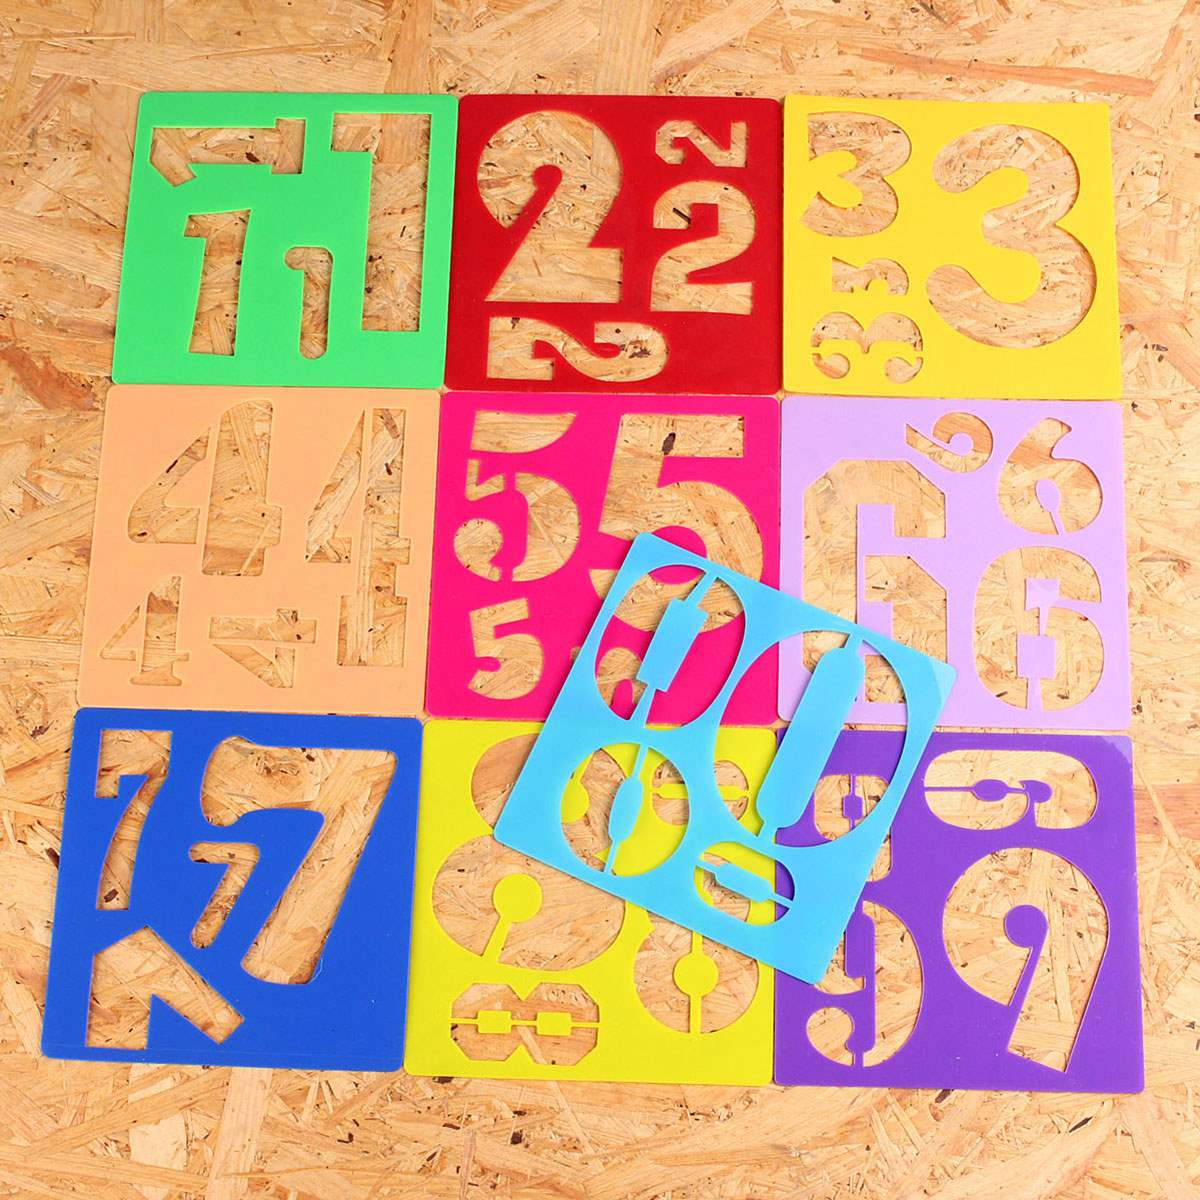 10pcs kids plastic numbers template craft drawing stencil toy oppssed painting children favor learning tool gift - Kids Drawing Stencils